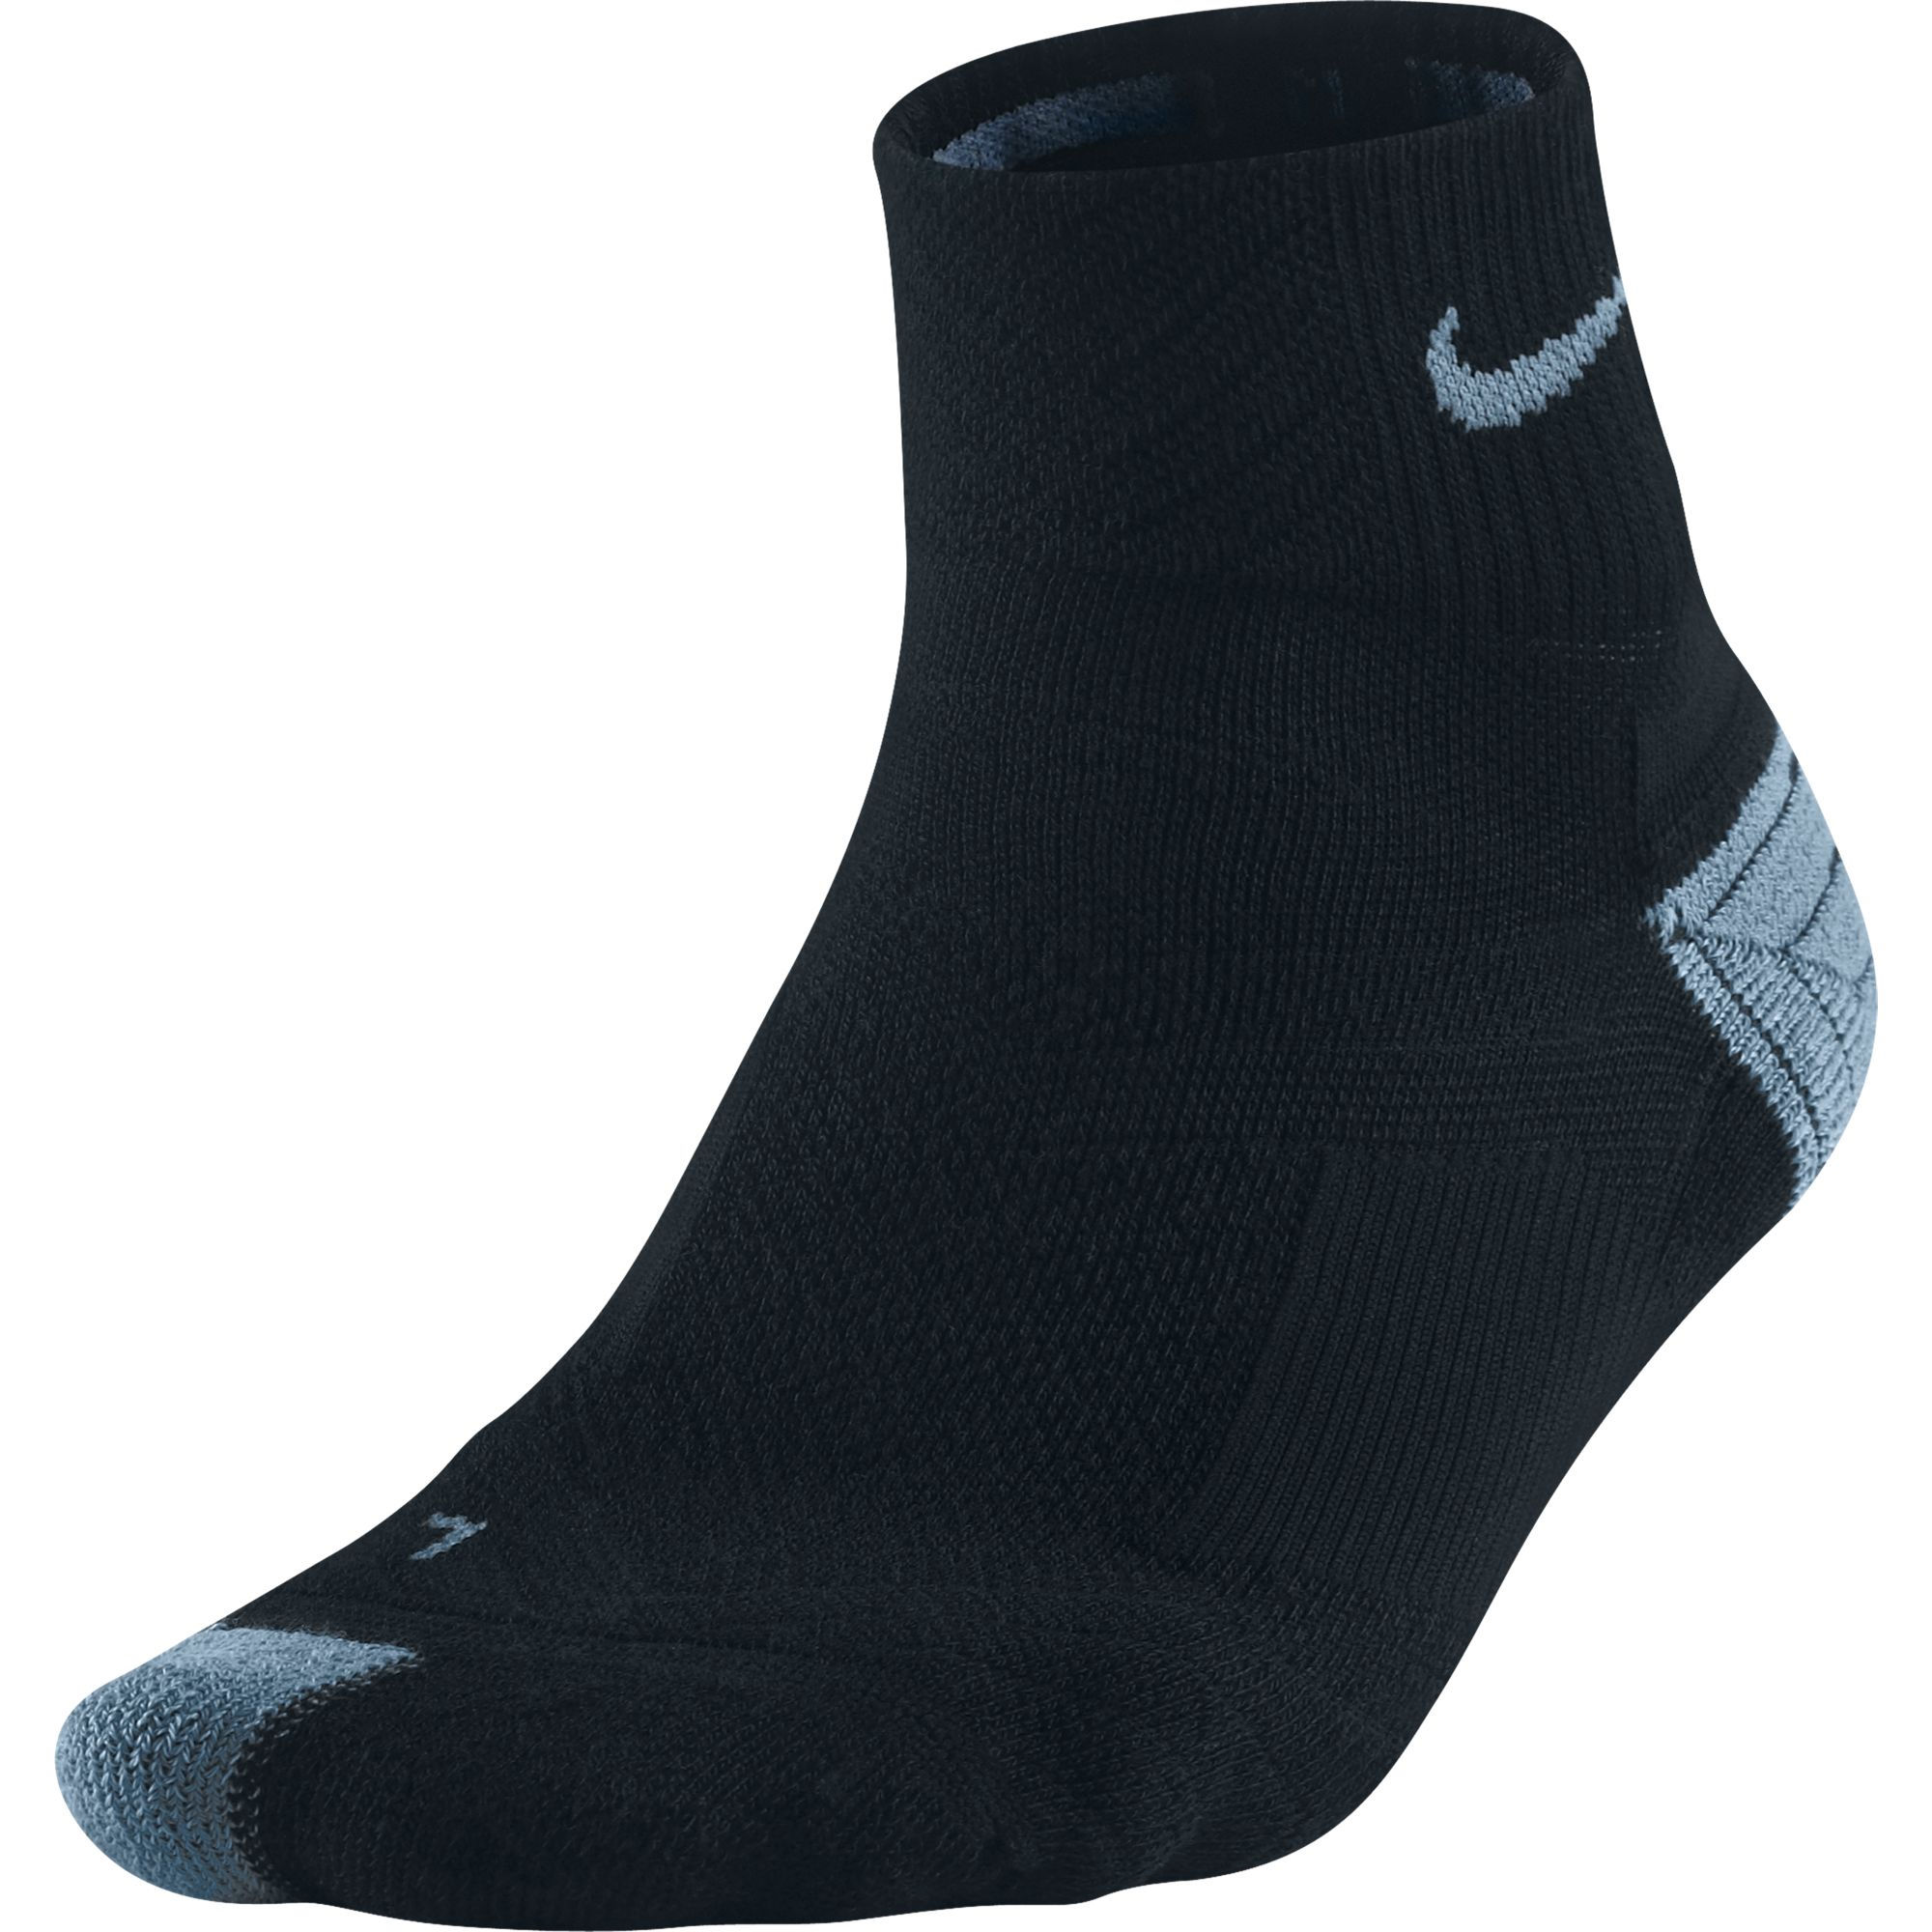 nike elite running cushion damen socken laufsocken. Black Bedroom Furniture Sets. Home Design Ideas